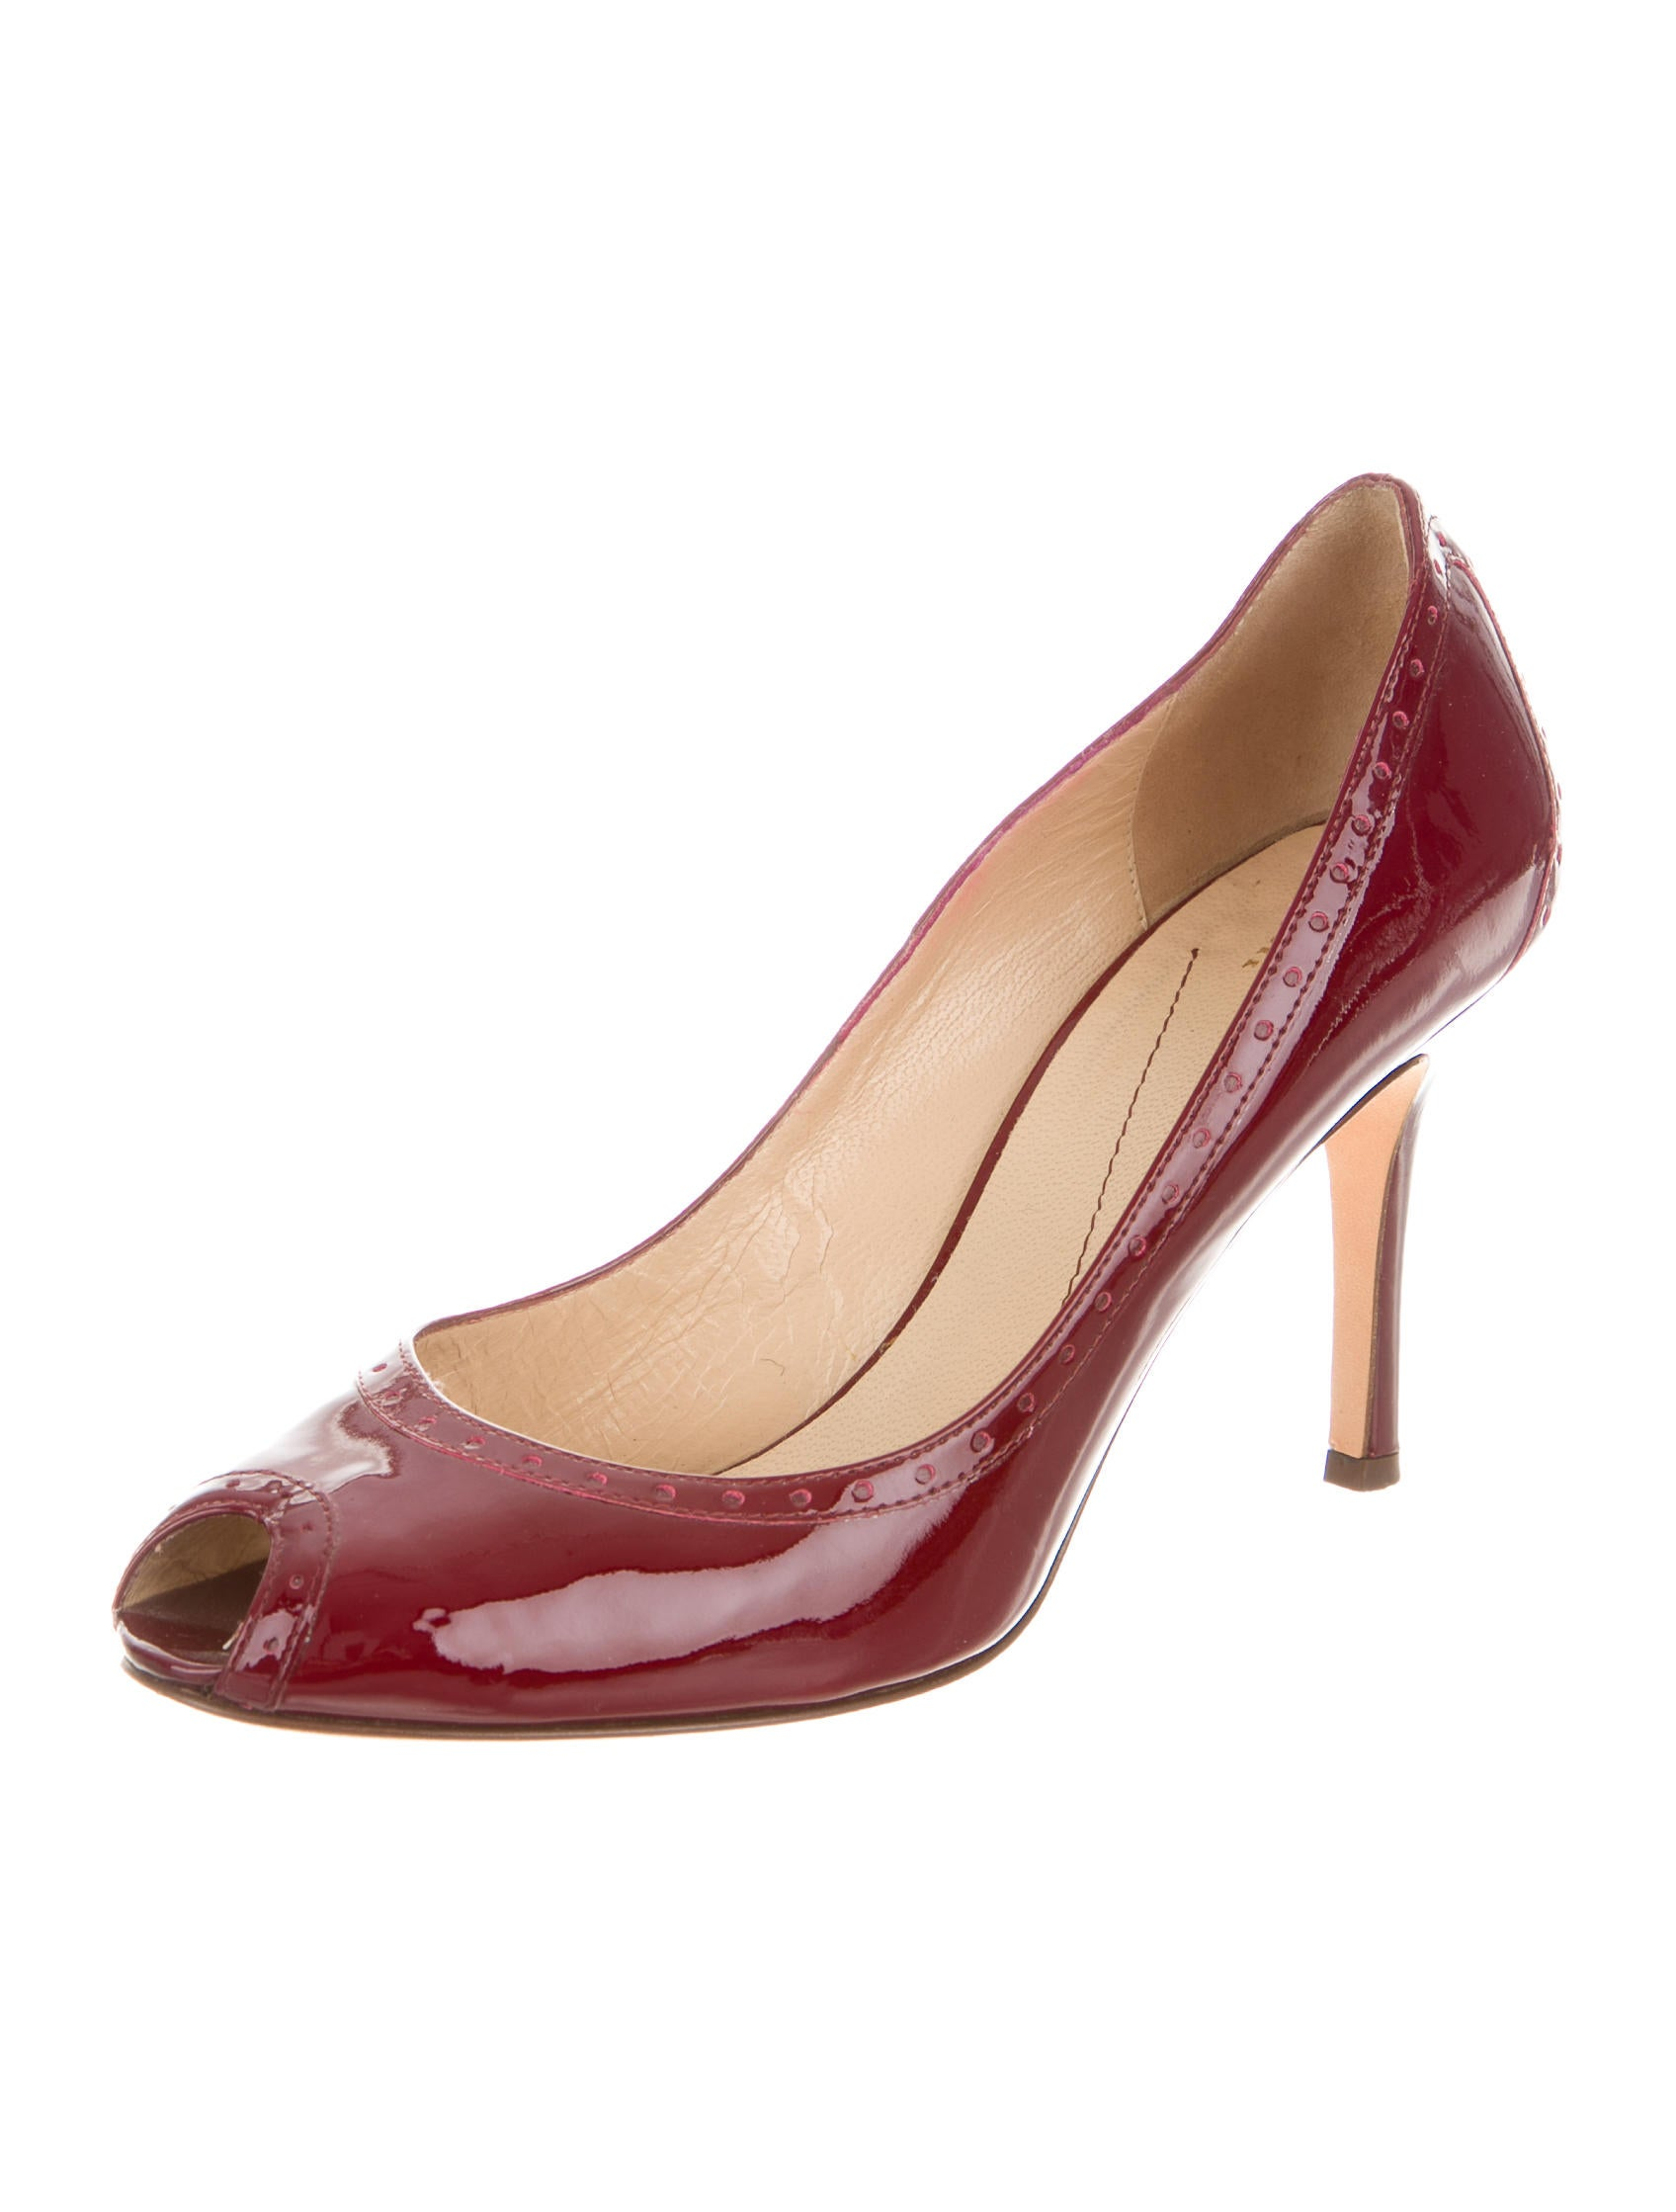 kate spade new york patent leather brogue pumps shoes